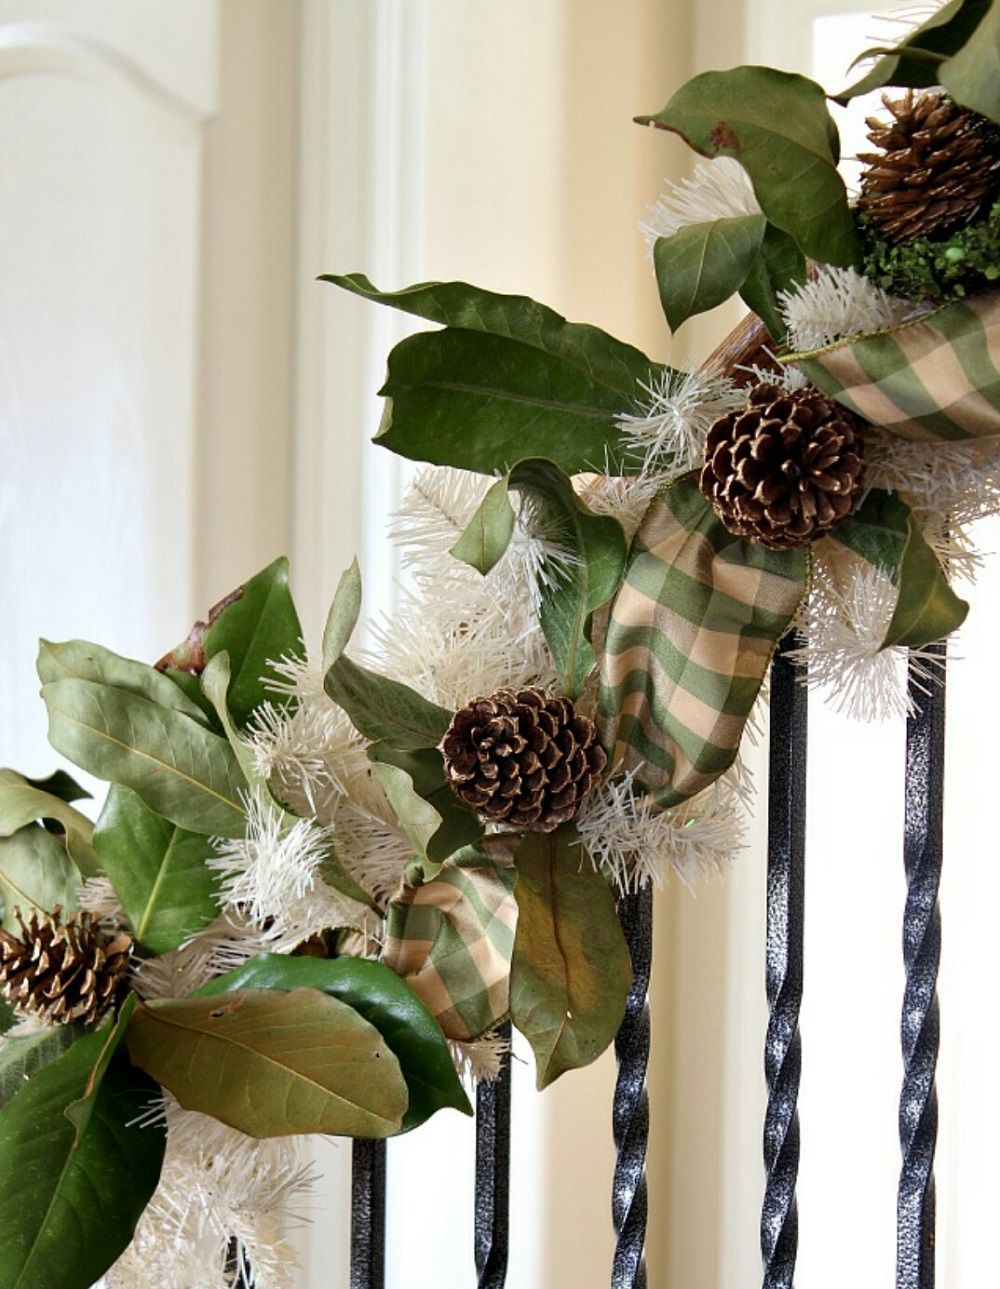 t3-129 Great decoration ideas for Christmas stairs that you should definitely try